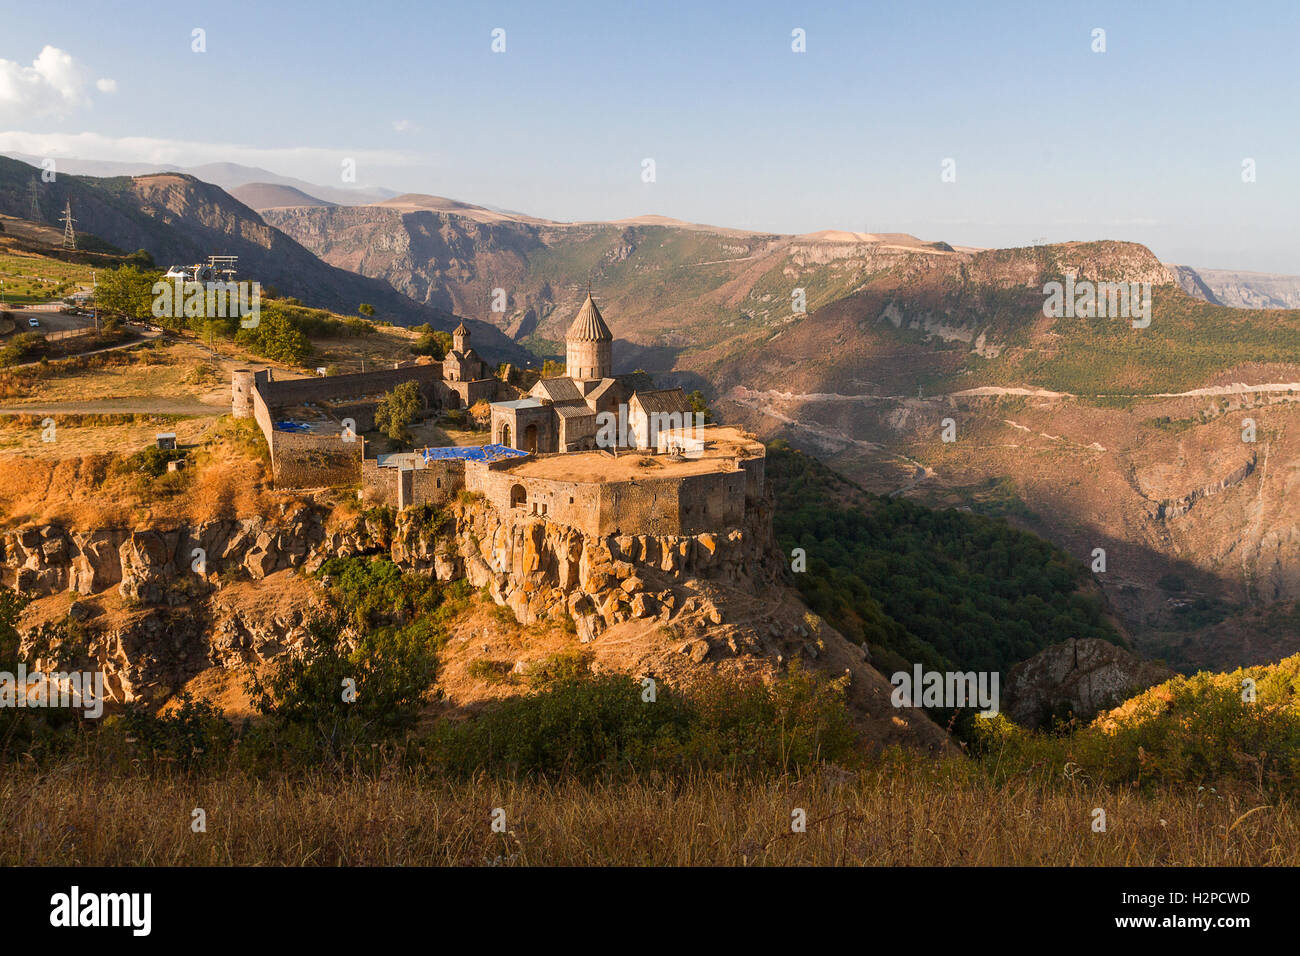 Monastery of Tatev in Armenia. - Stock Image